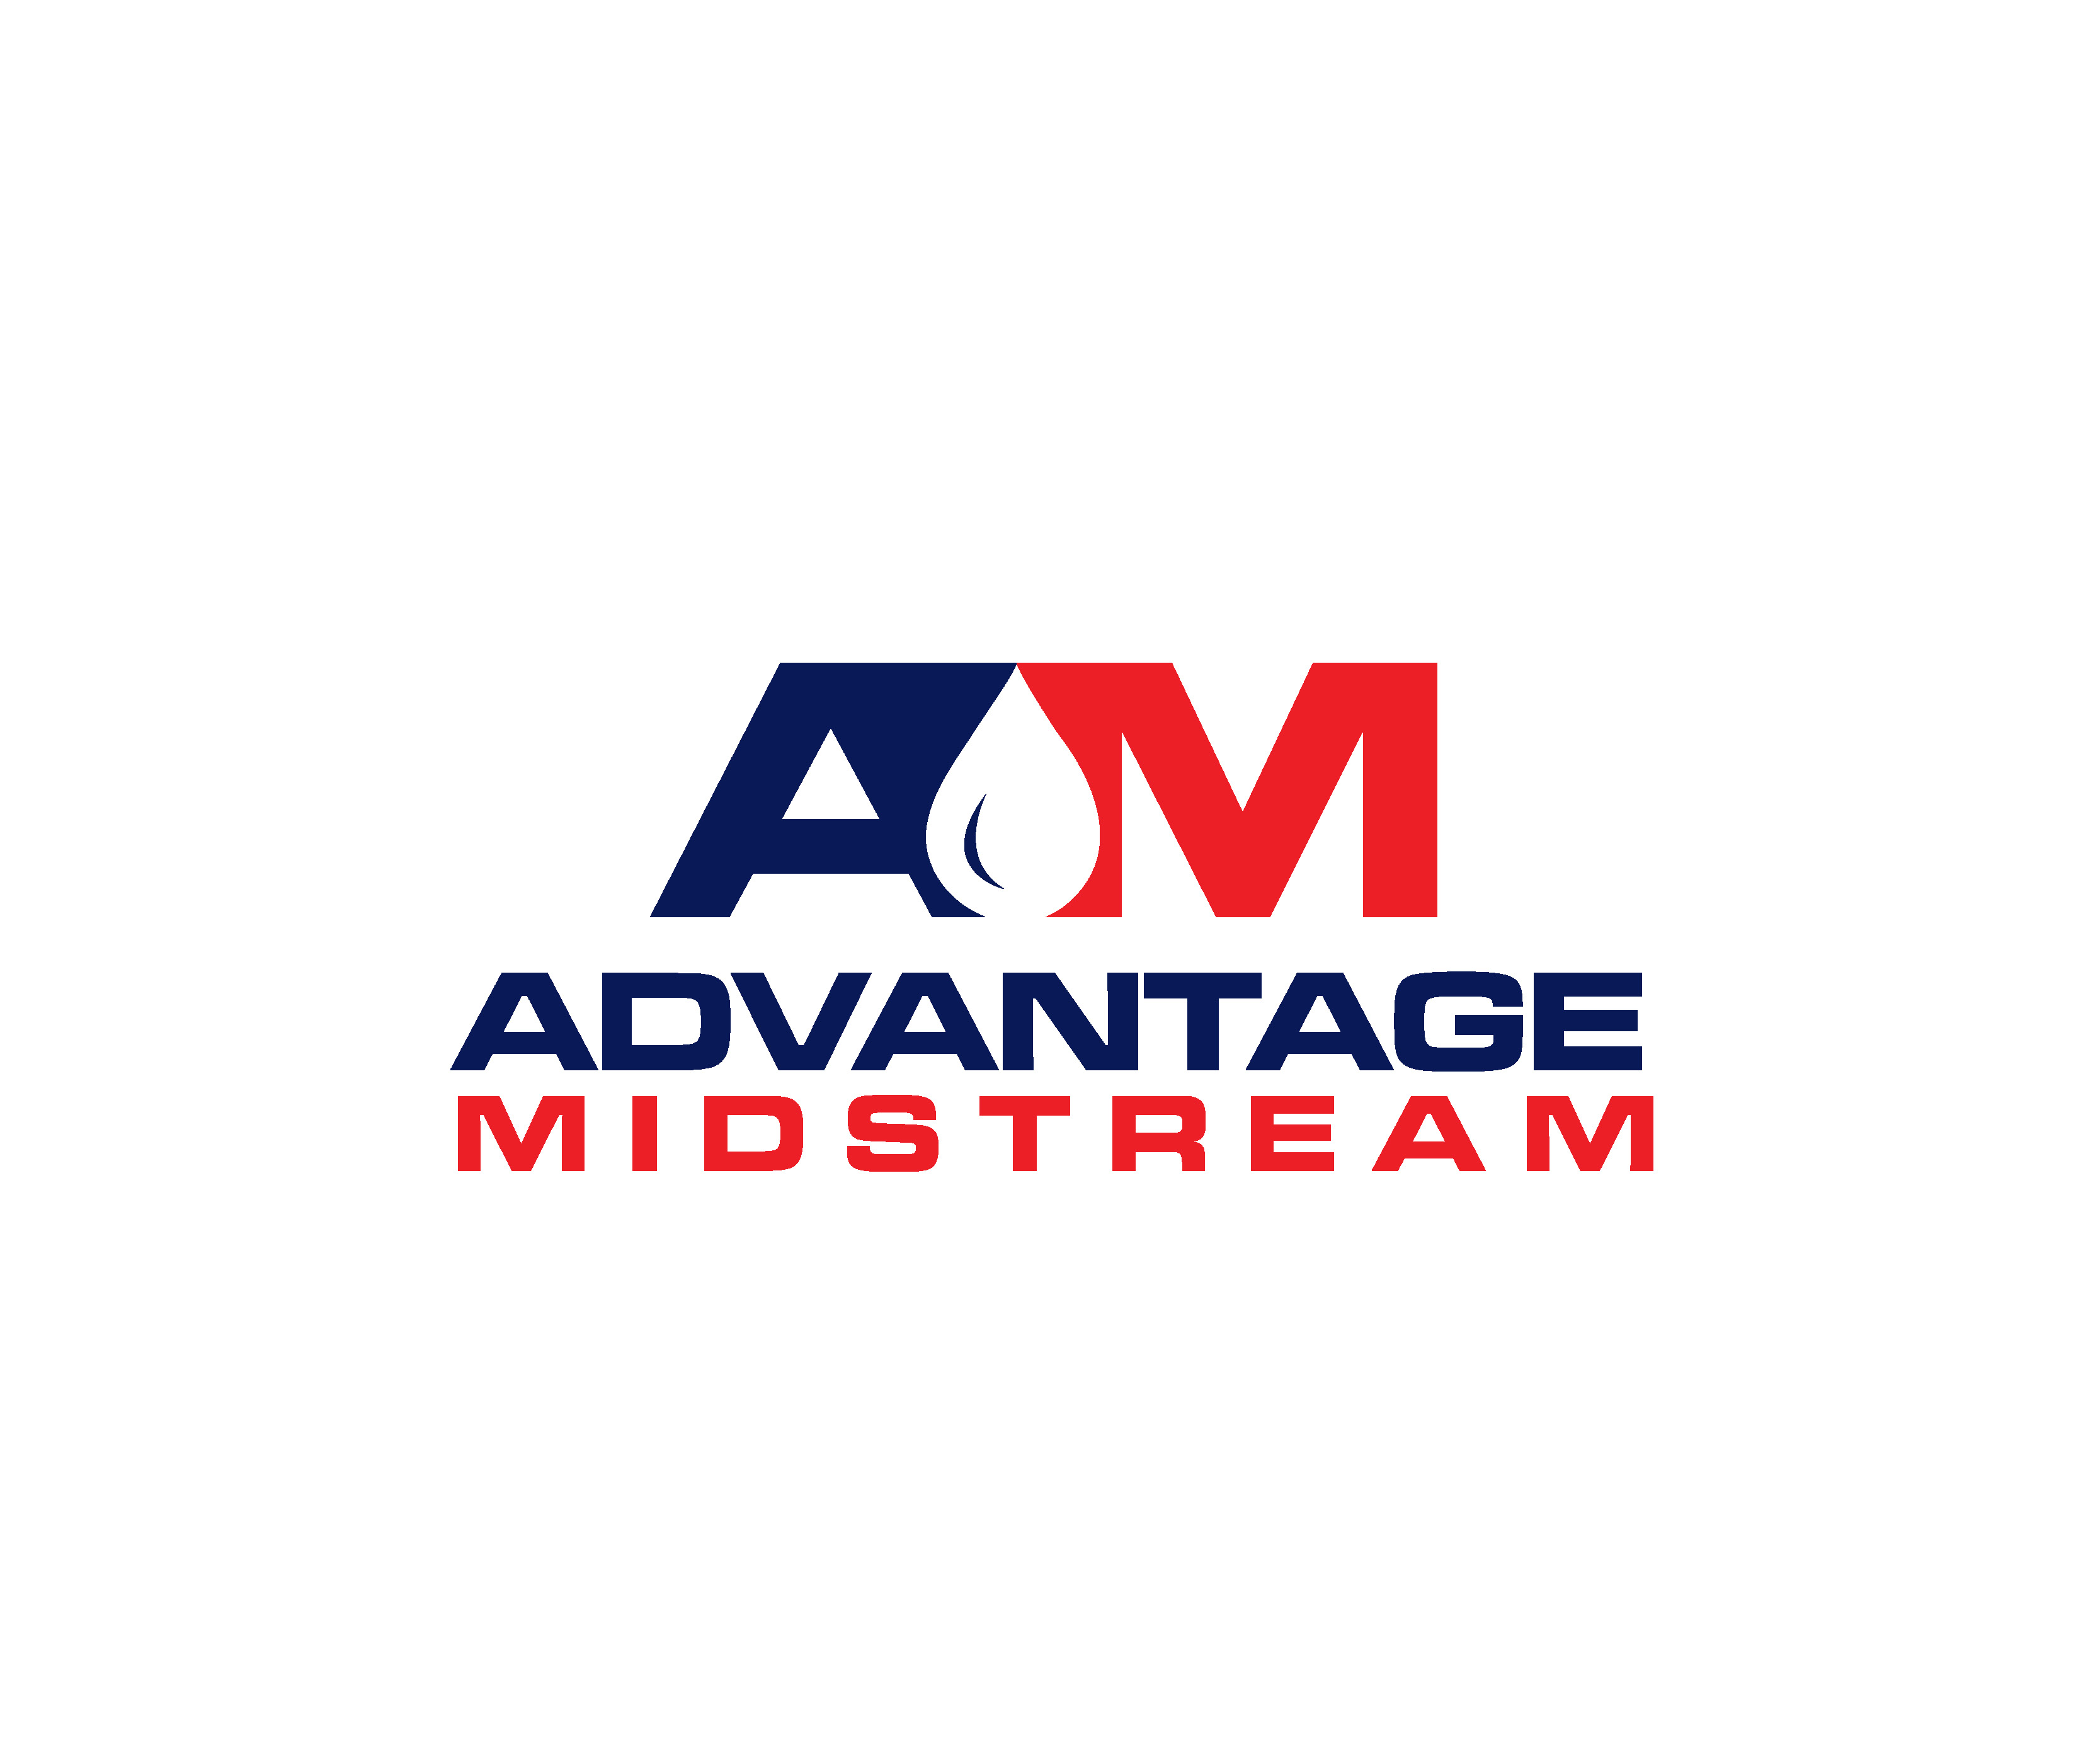 Advantage Midstream logo